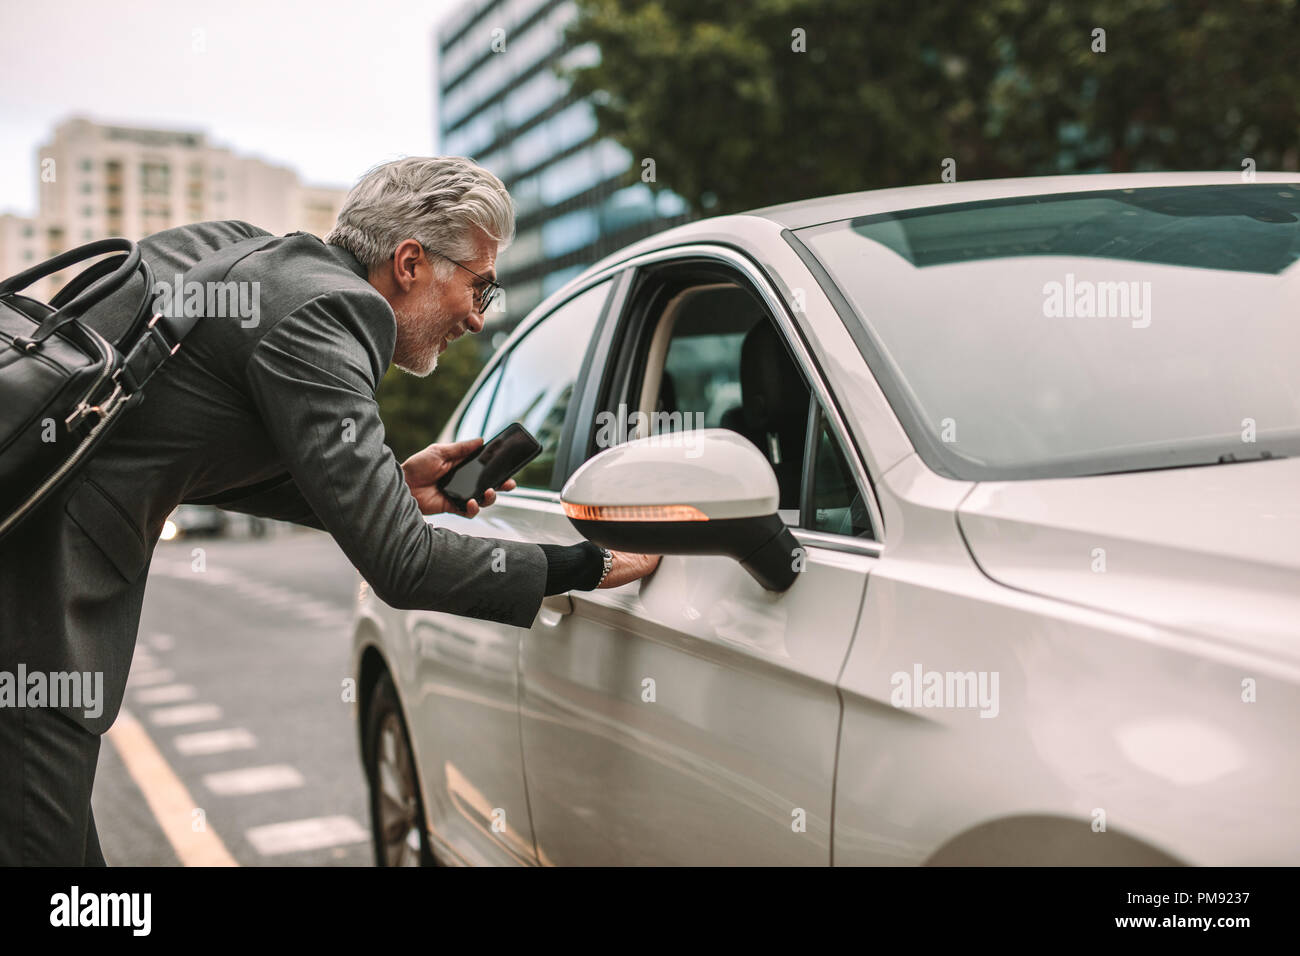 Senior man standing on road and talking to taxi driver through opened car window. Man taking a cab for traveling. - Stock Image